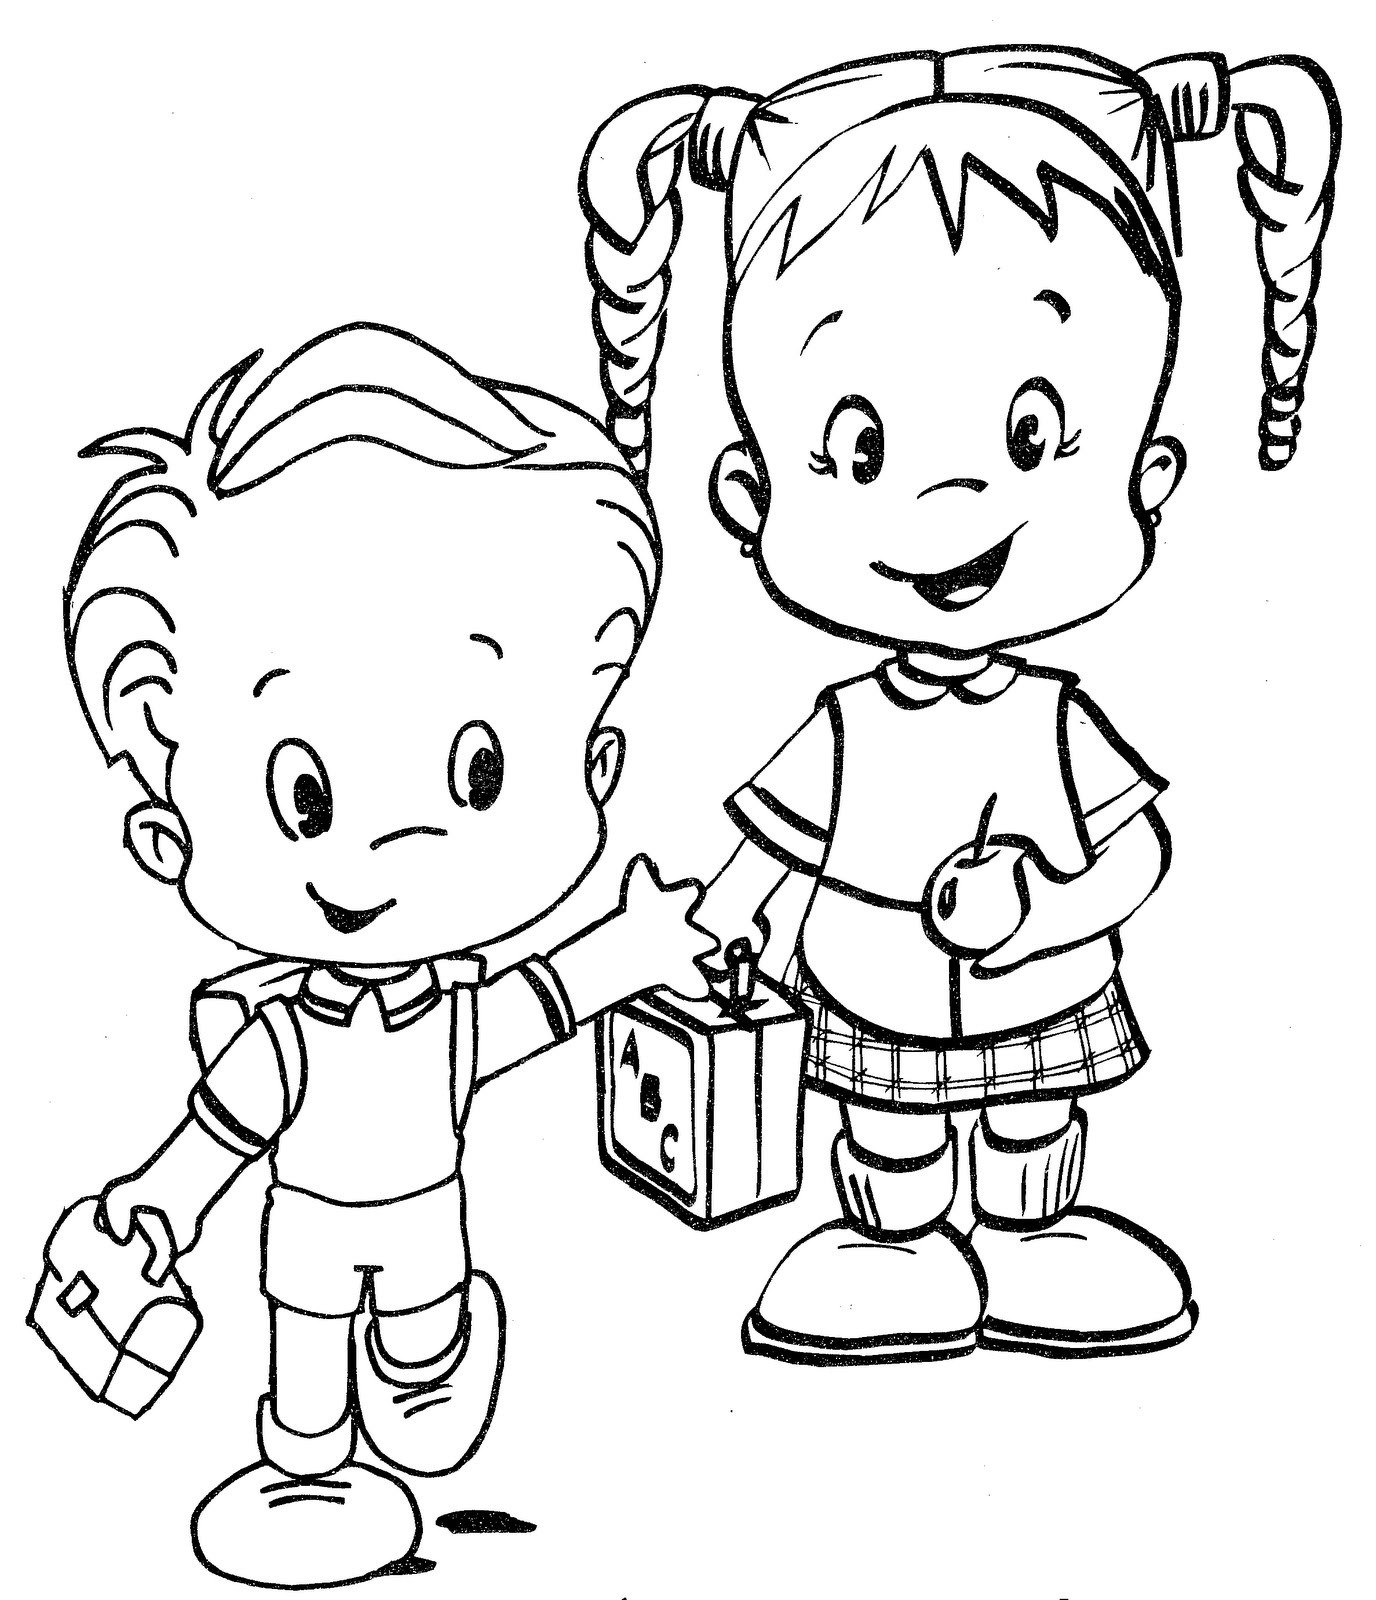 Free Back to School Coloring Page for Preschool